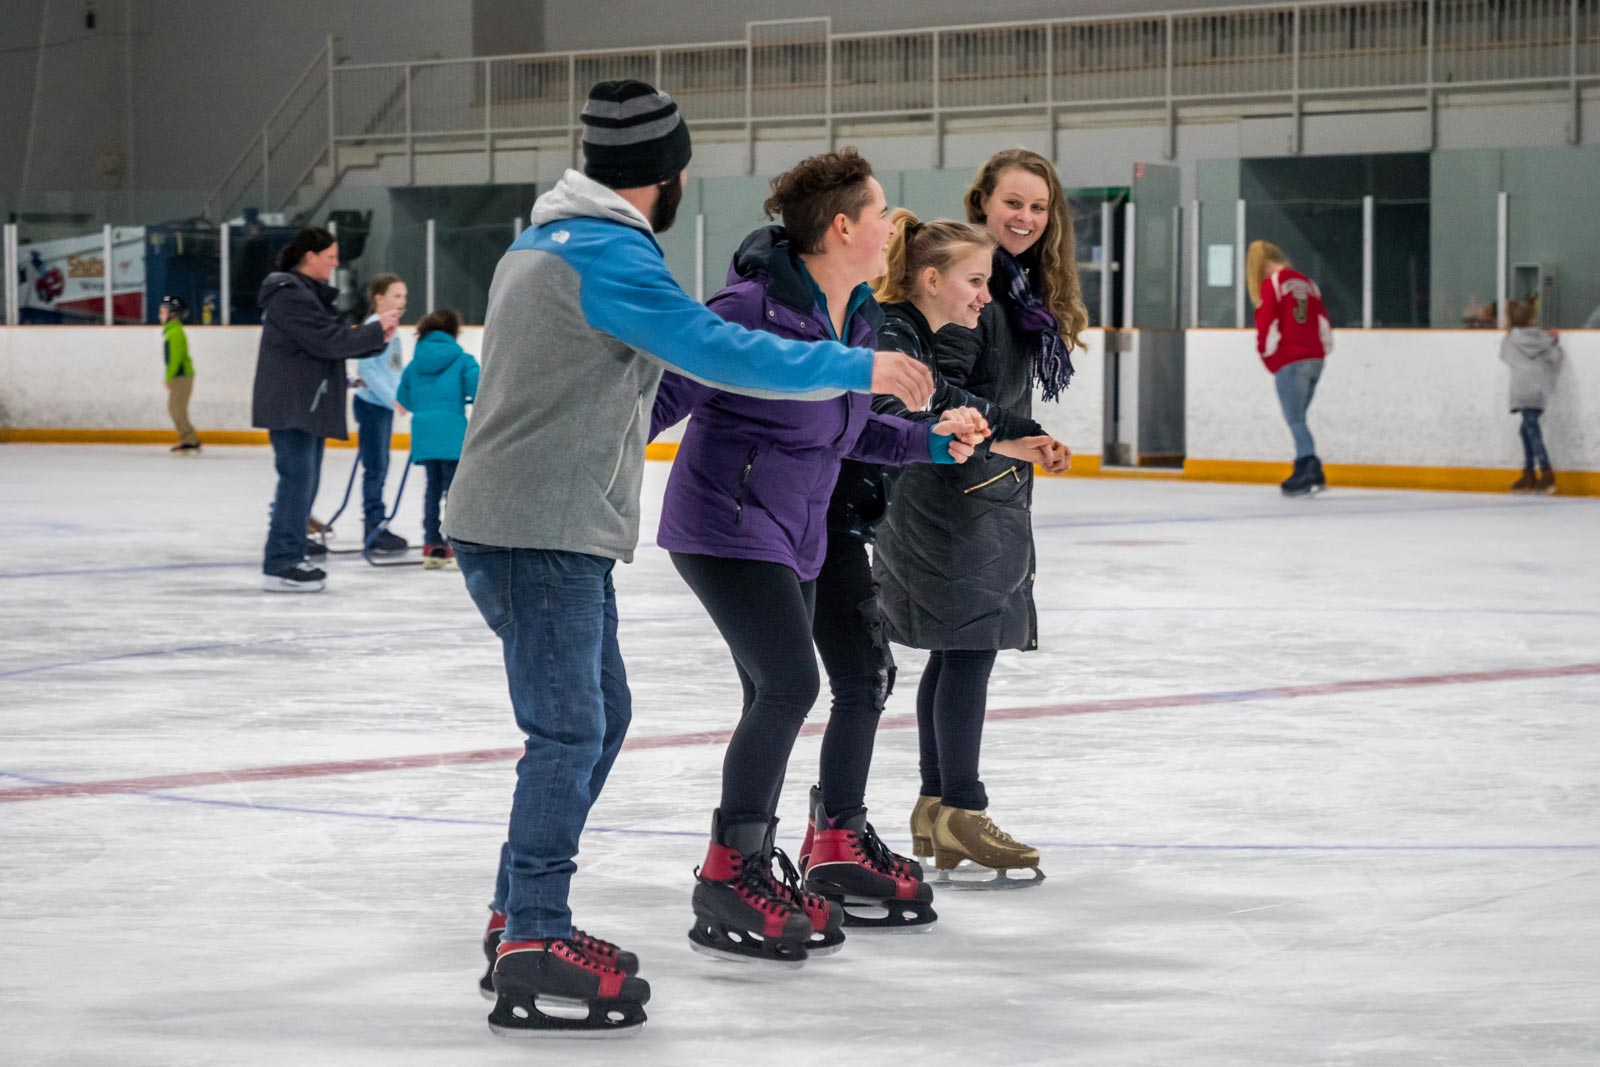 Four friends ice skate while holding hands and smiling